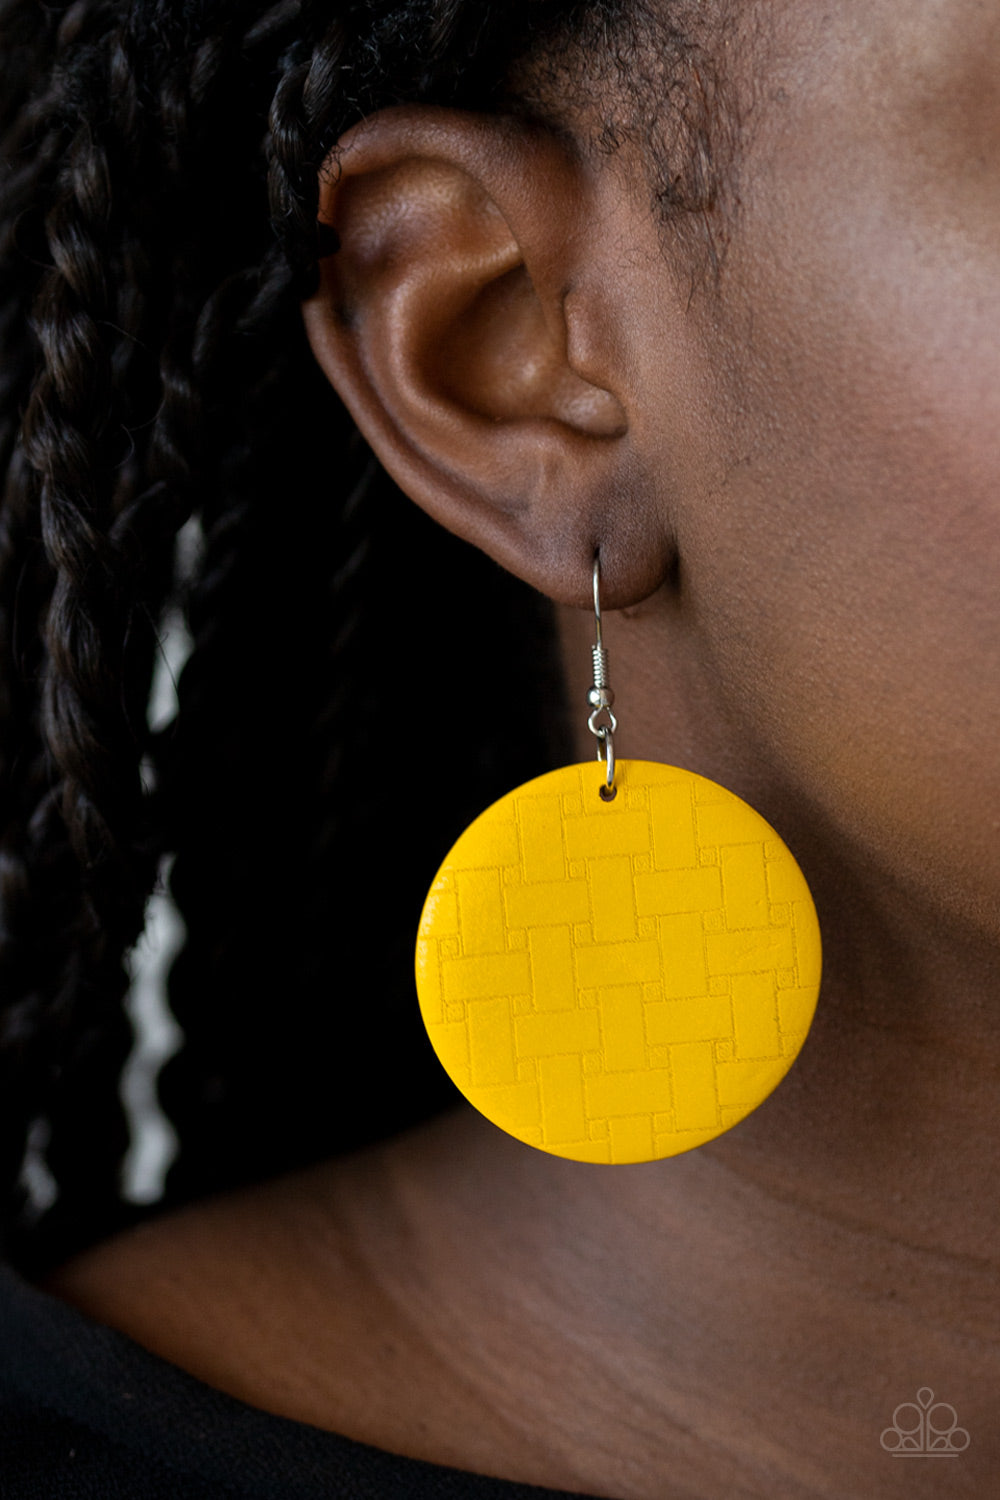 Paparazzi Jewelry & Accessories - Natural Novelty - Yellow Earrings. Bling By Titia Boutique